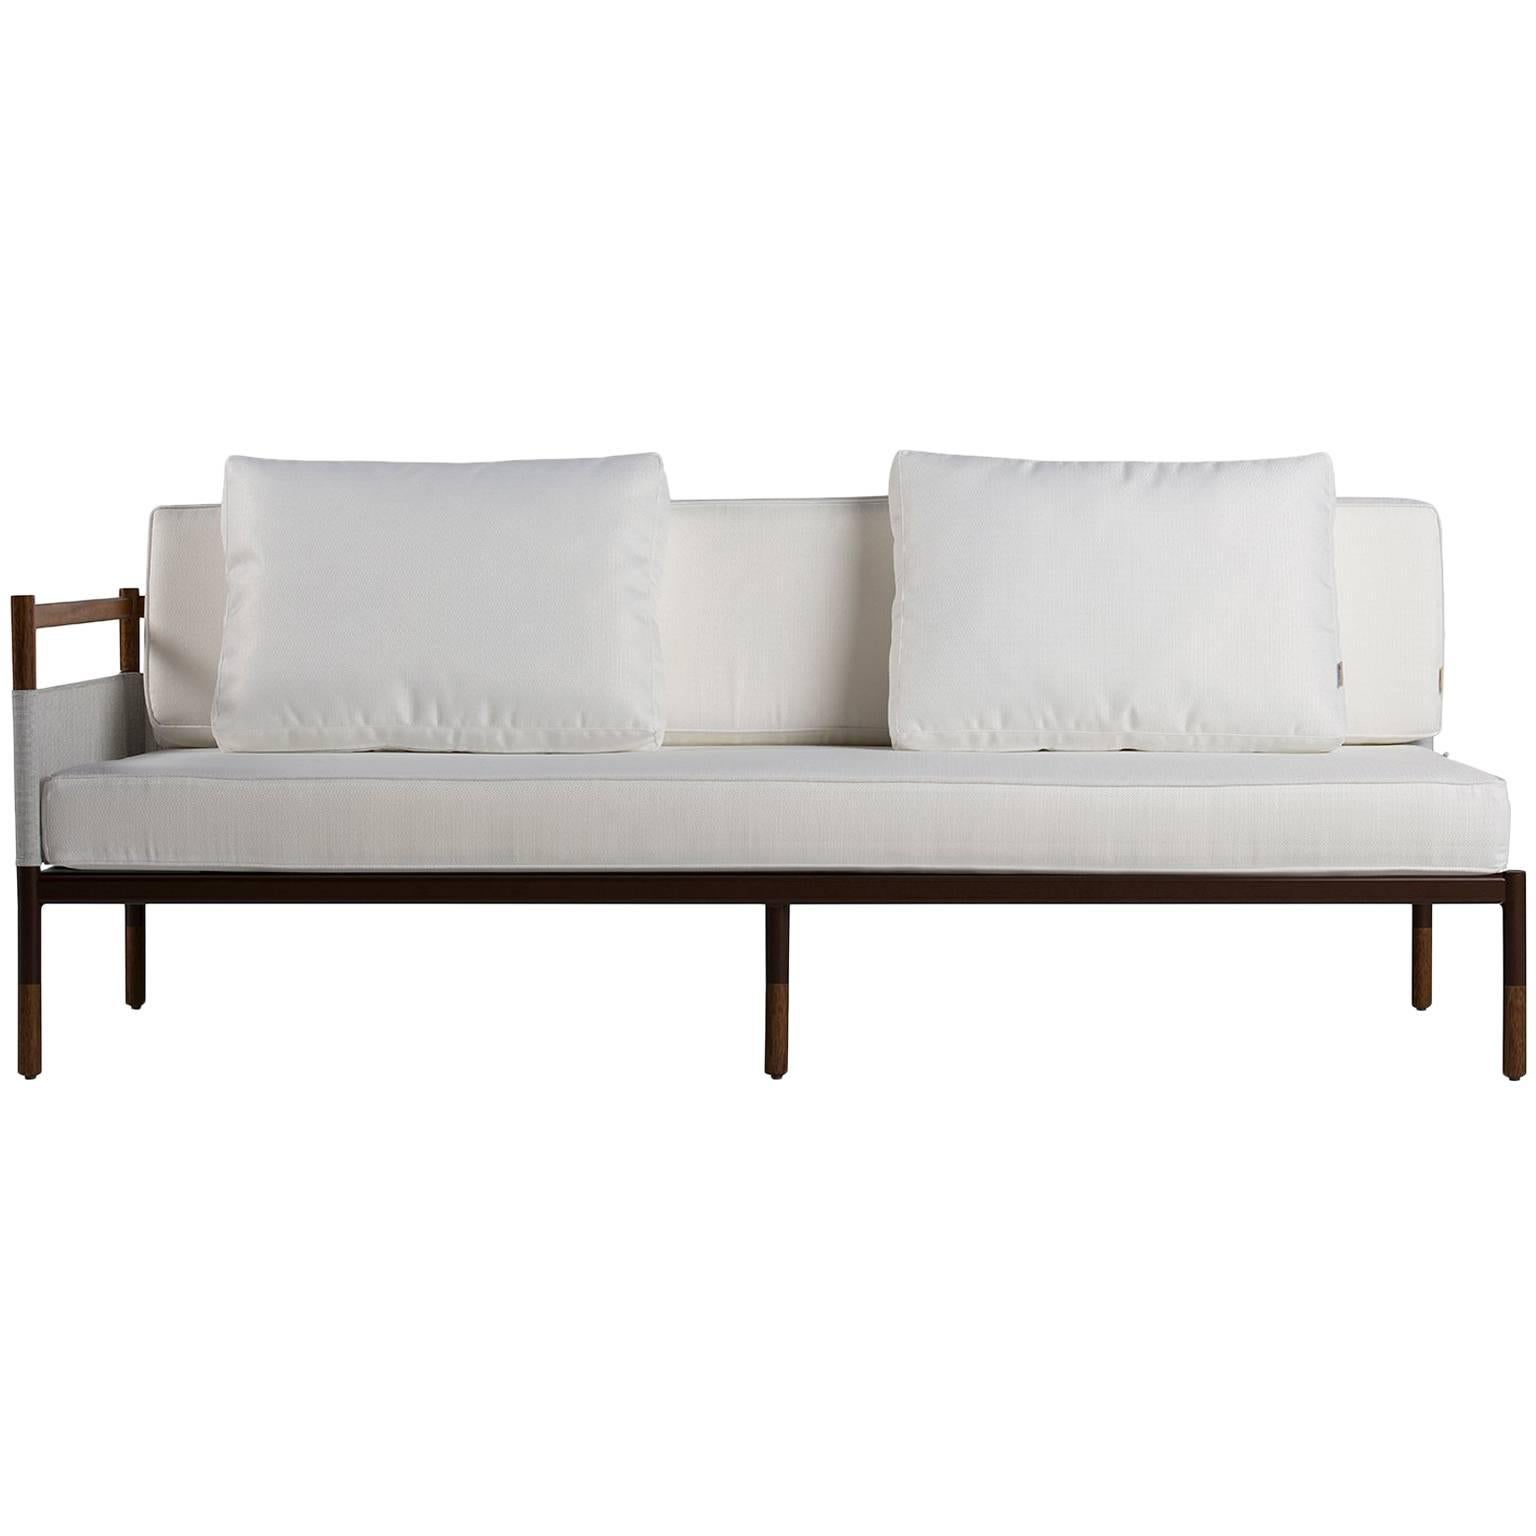 Superieur Minimalist Sofa In Hardwood, Metal And Fabrics, Usable Outdoors For Sale